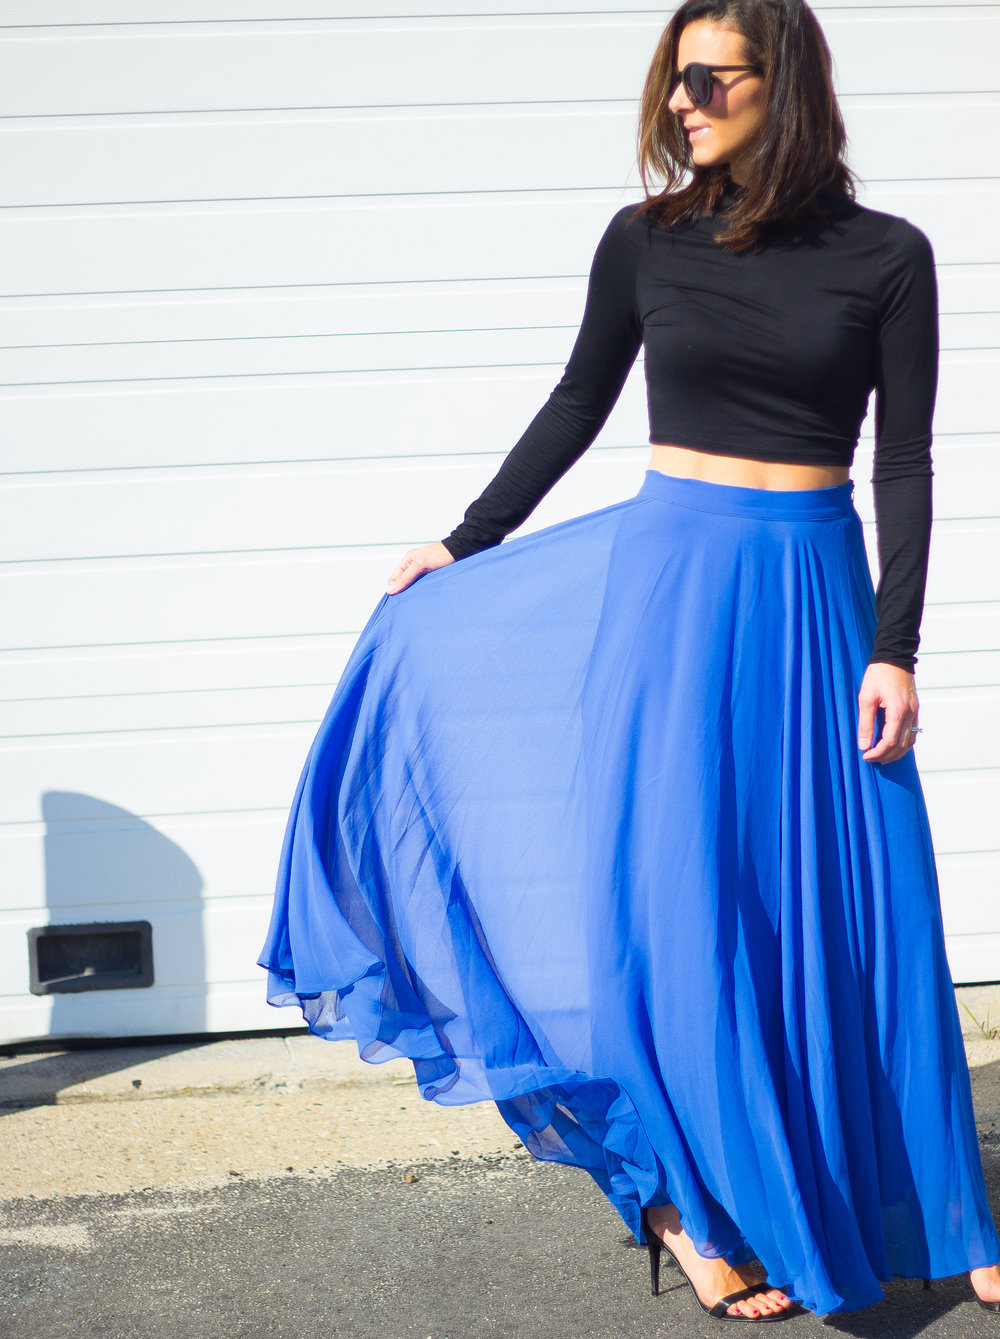 Maxi Skirt Outfits – Blue Maxi Skirt Outfits – Fashion for Women – Date Night Outfits – Summer Outfits – Black Crop Top Outfits –  heartandseam.com  #heartandseam #morninglavender